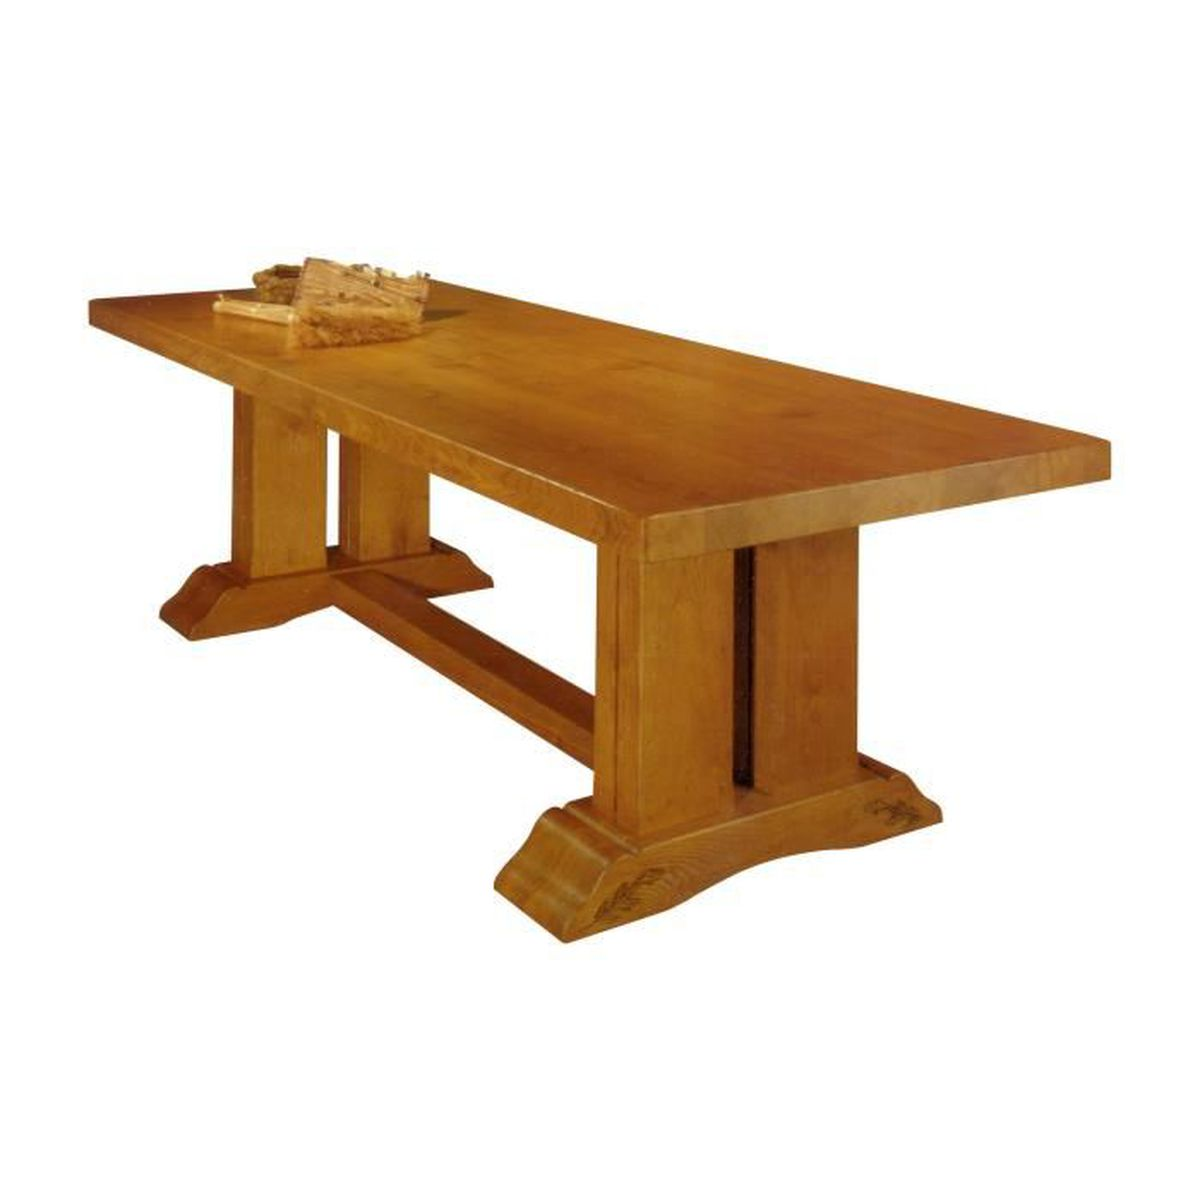 Table monast re en ch ne massif orge achat vente for Grande table a rallonge